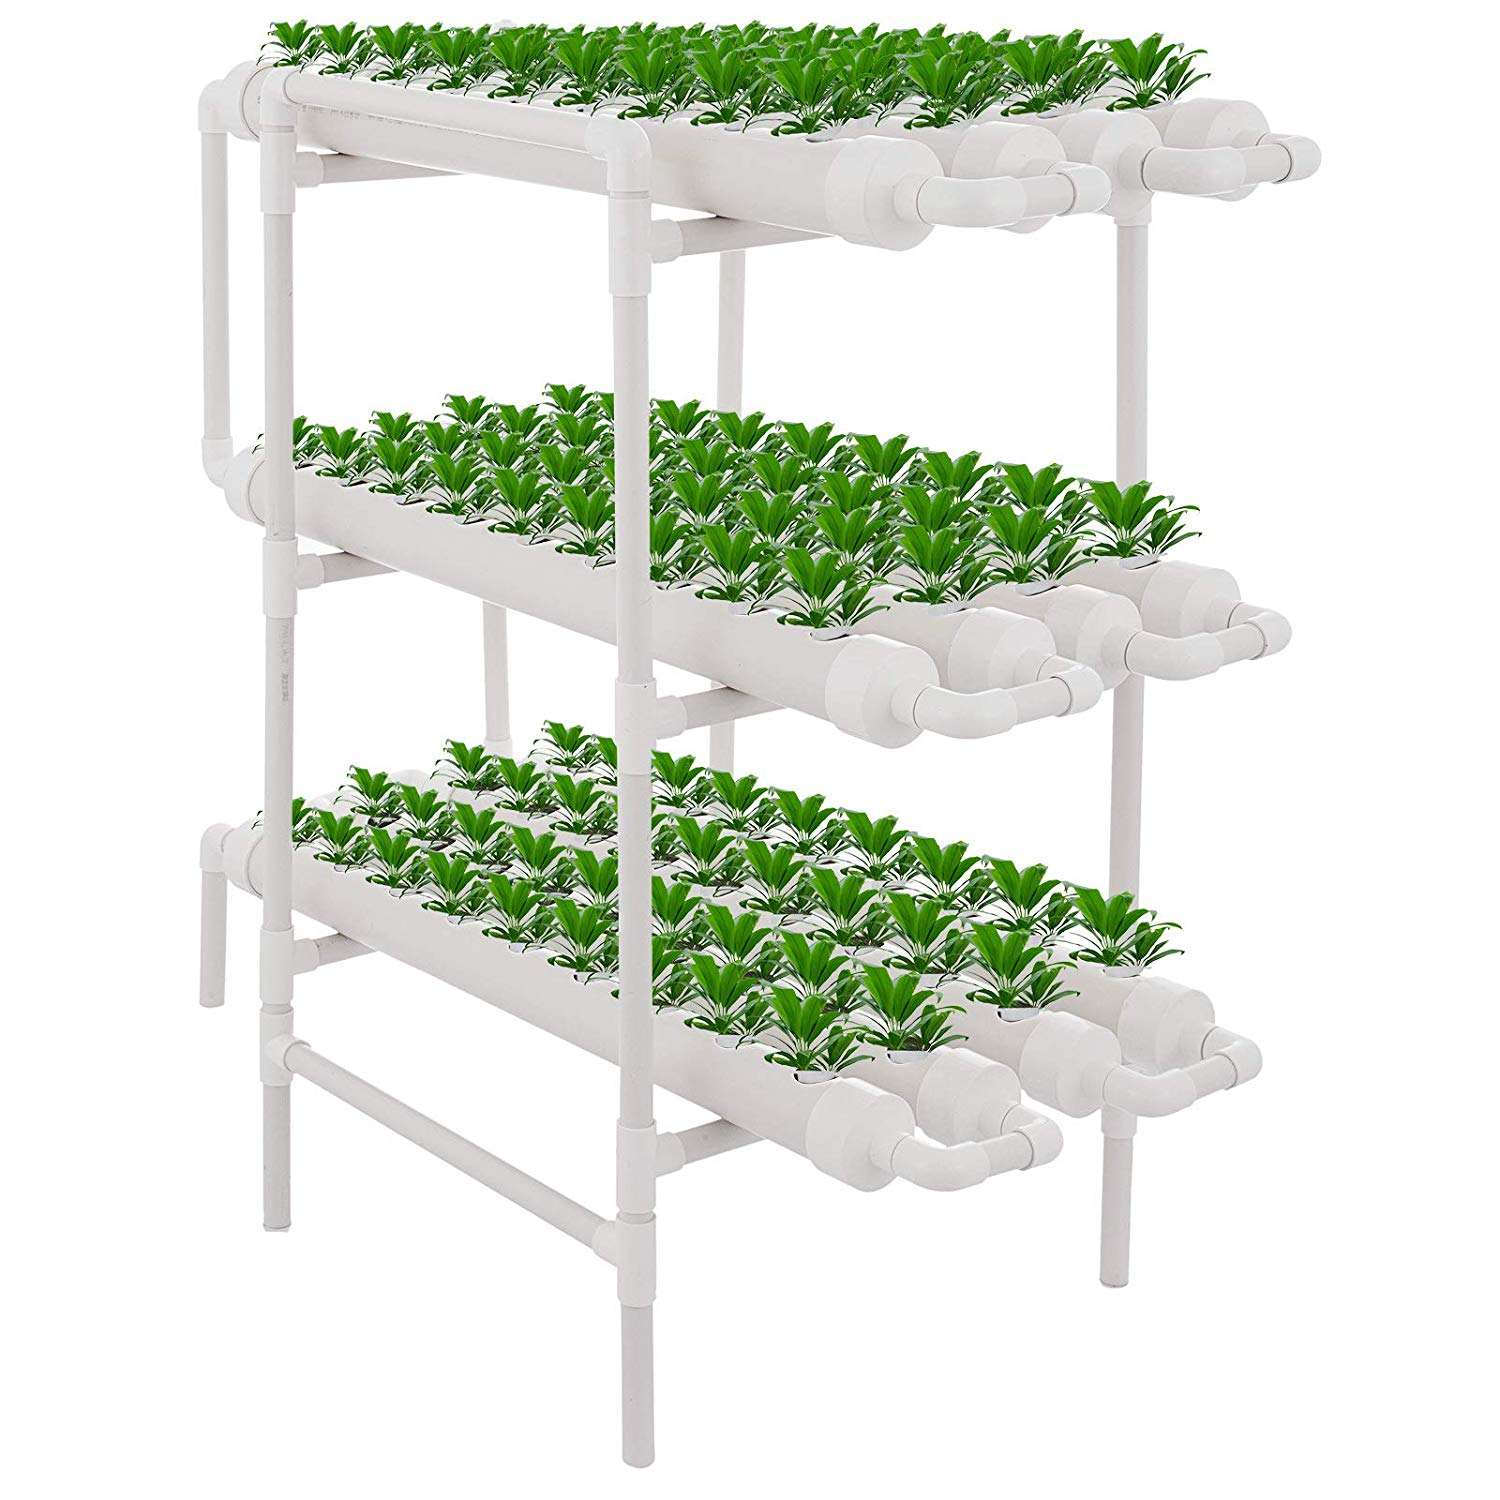 Hydroponics Nft System with 108 Holes Kits,Vertical Hydroponic Growing Systems PVC Tube Plant Vegetable